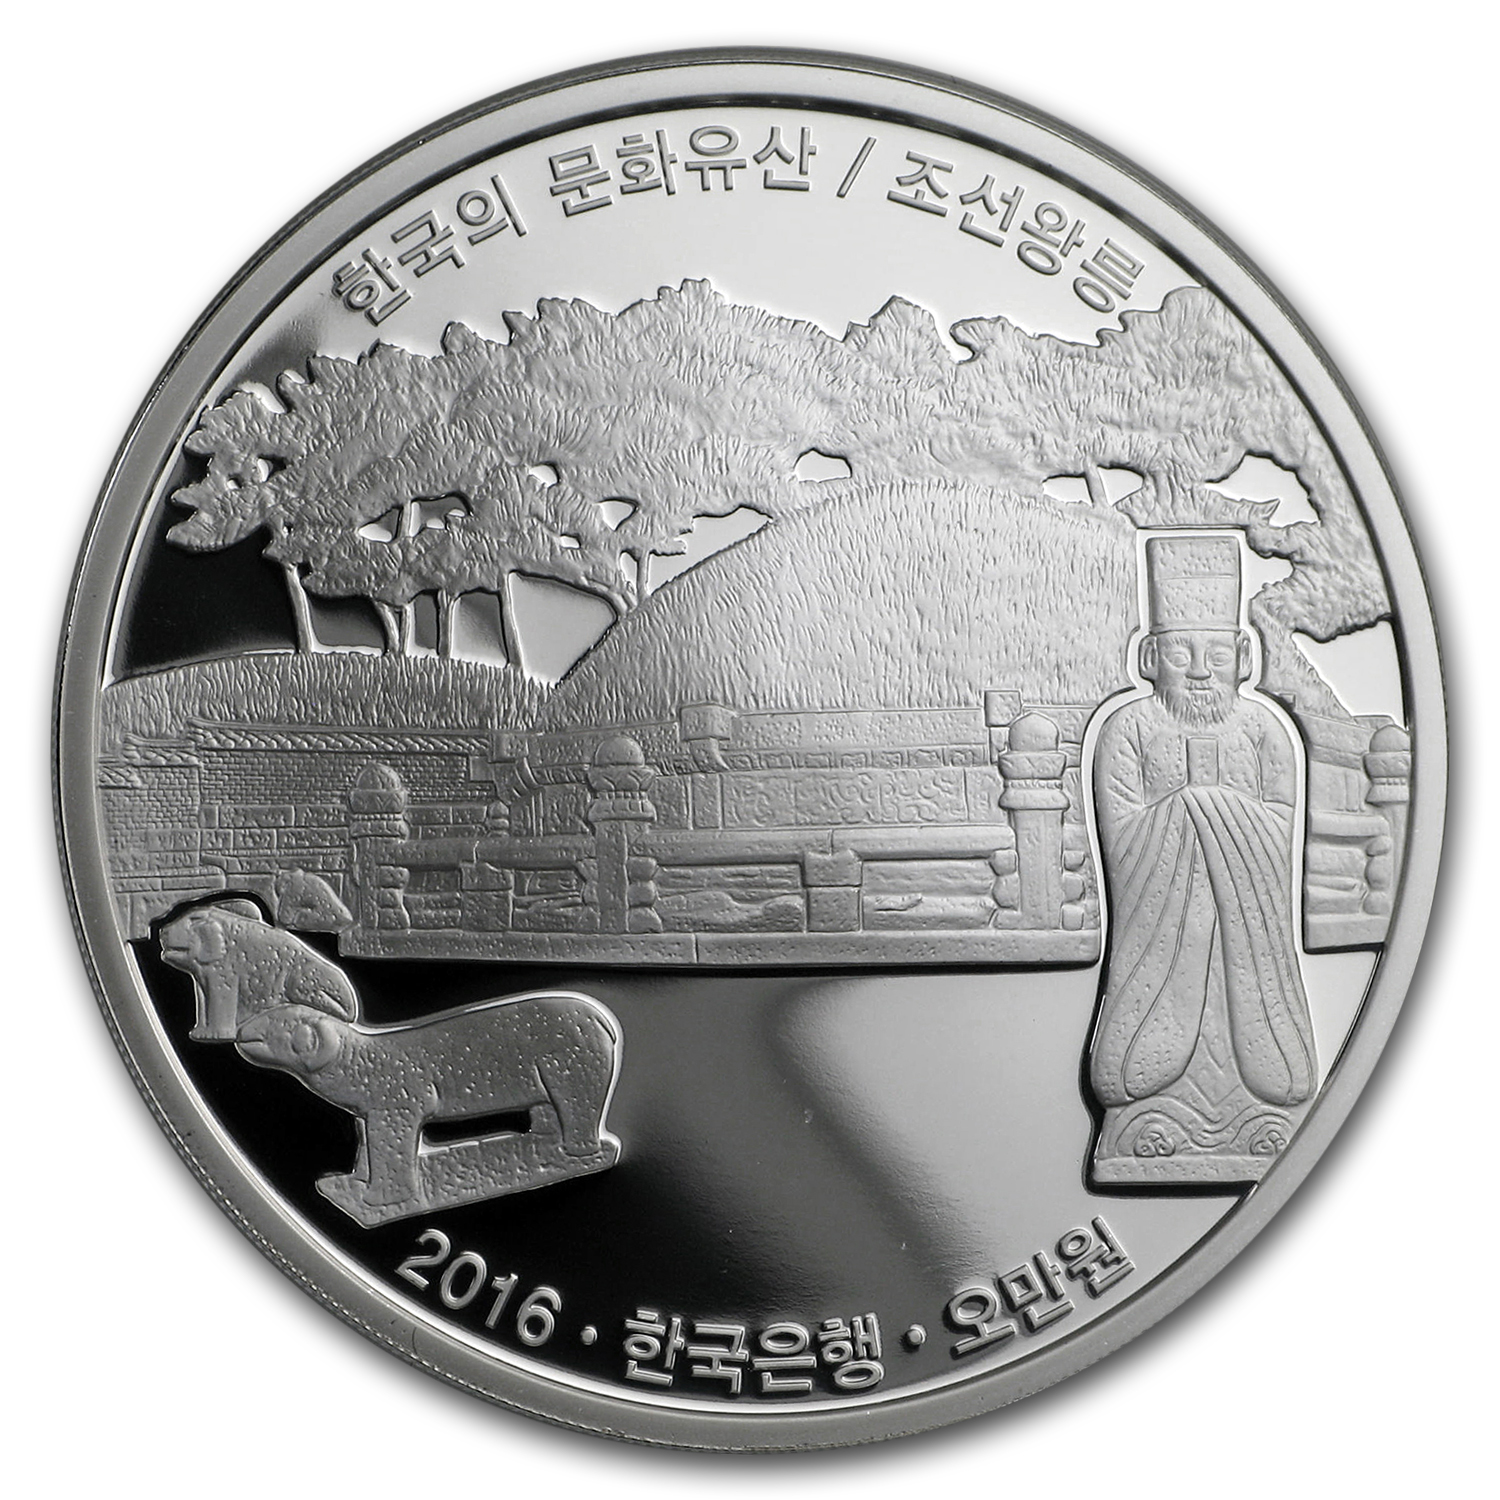 2016 South Korea 2-Coin Silver UNESCO World Heritage Sites Set